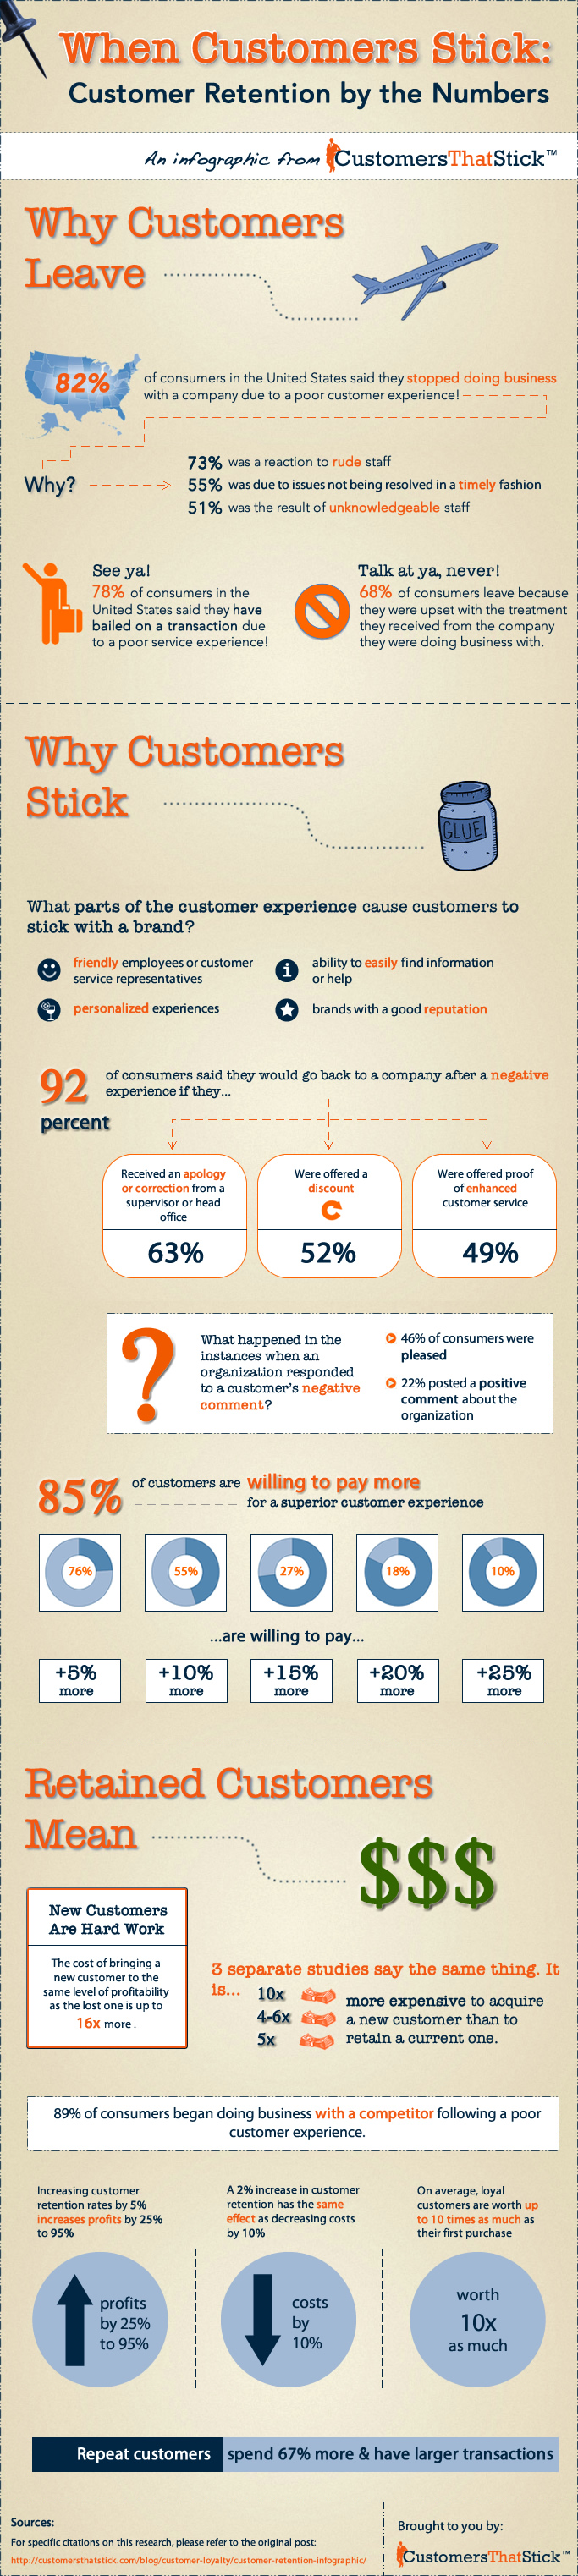 Customer Retention by the Numbers | Customer Service Infographic